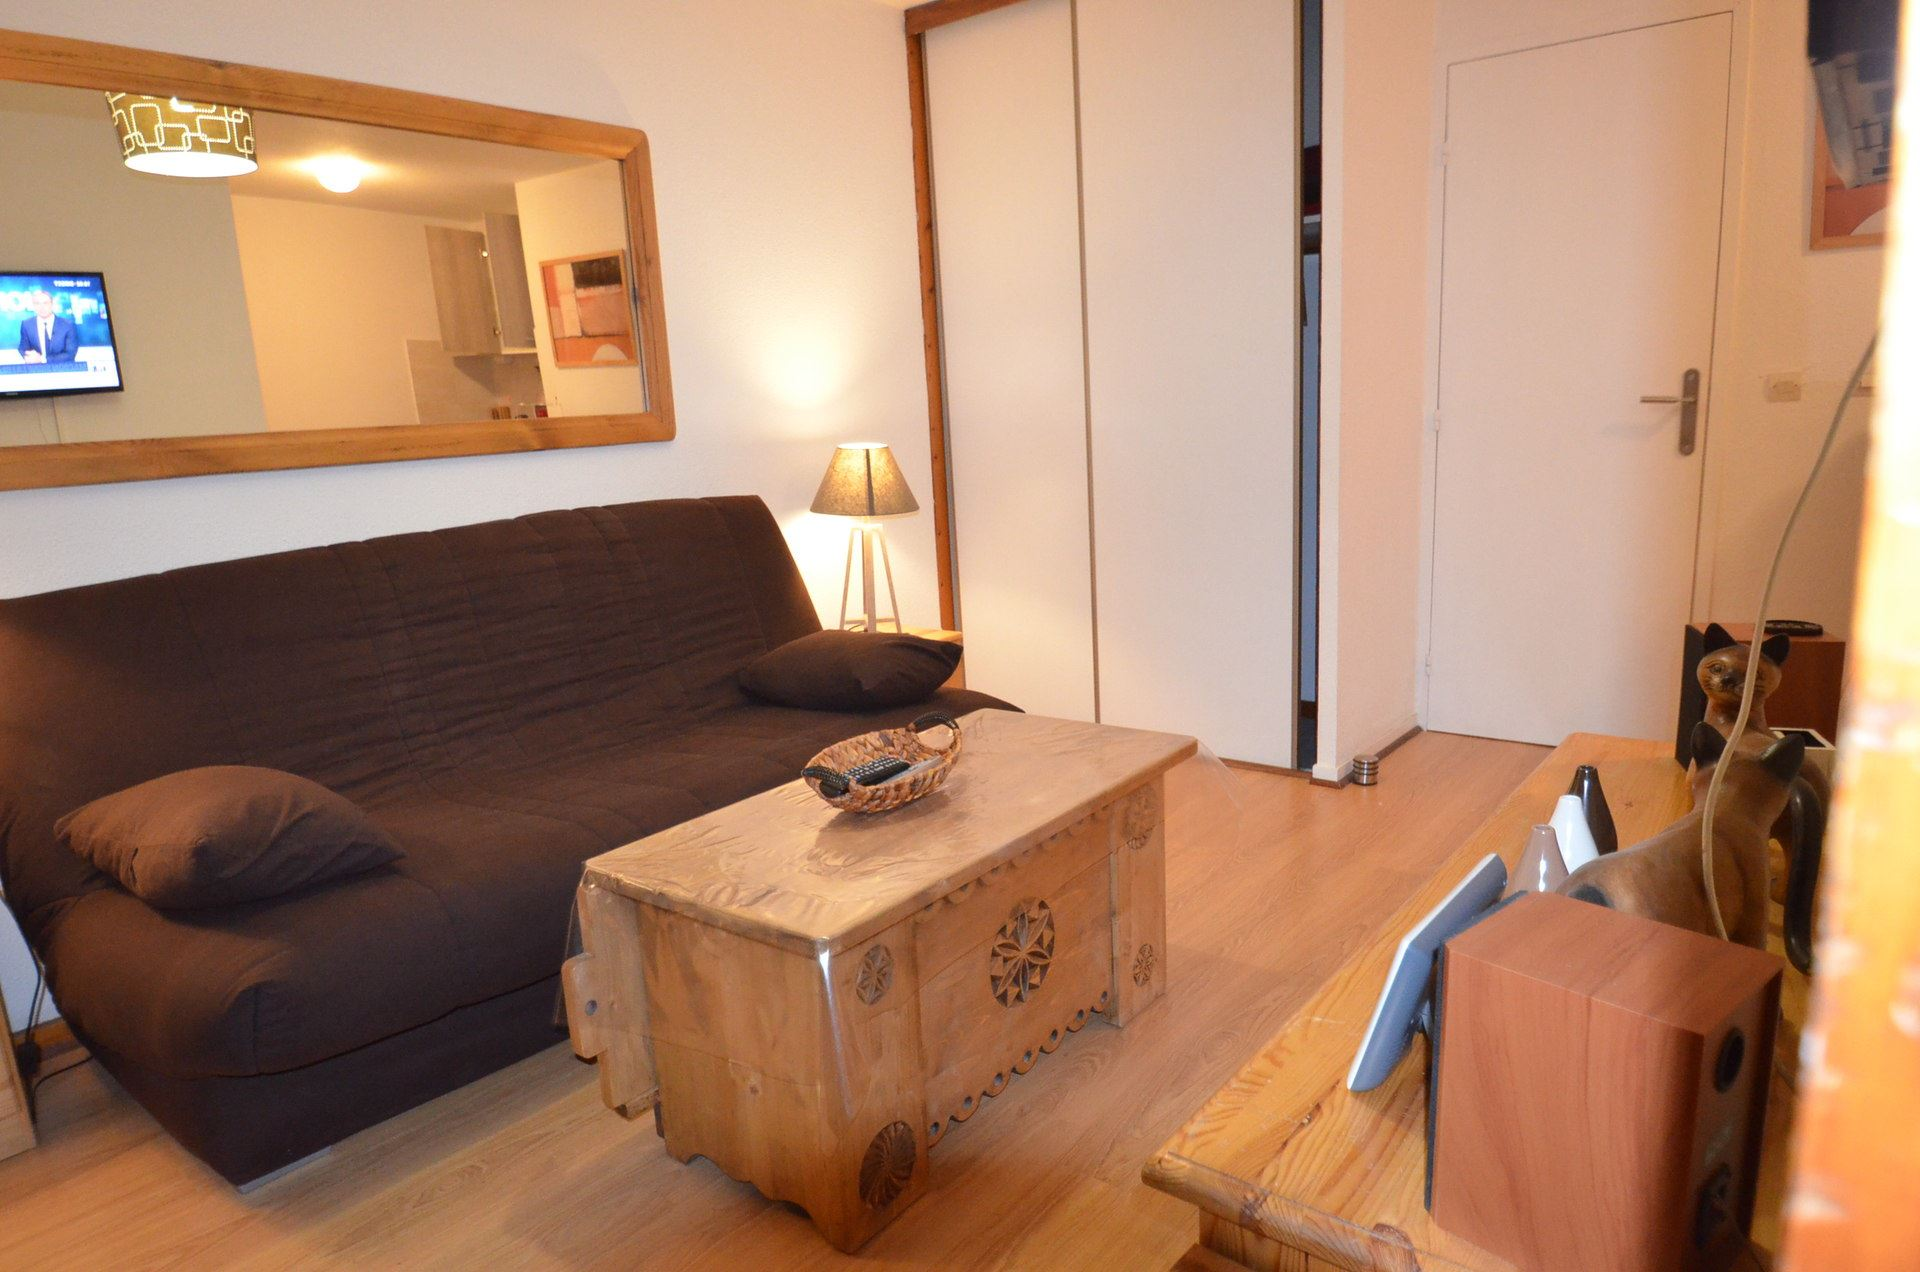 2 Room + cabin 4 pers ski-in ski-out / BALCONS D'OLYMPIE 13